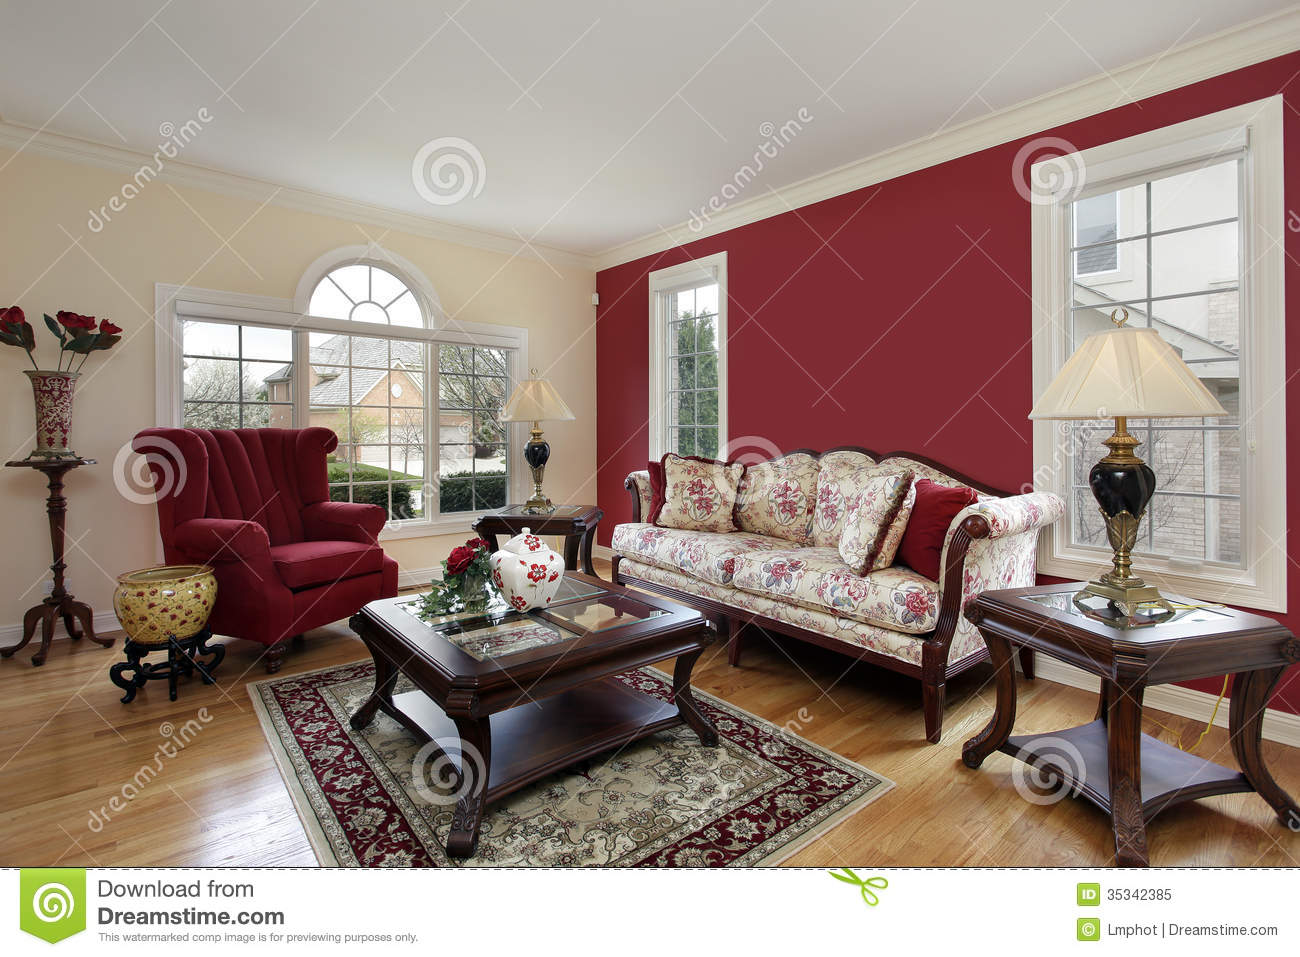 Living room with red and cream colored walls stock image for Cream and red living room designs